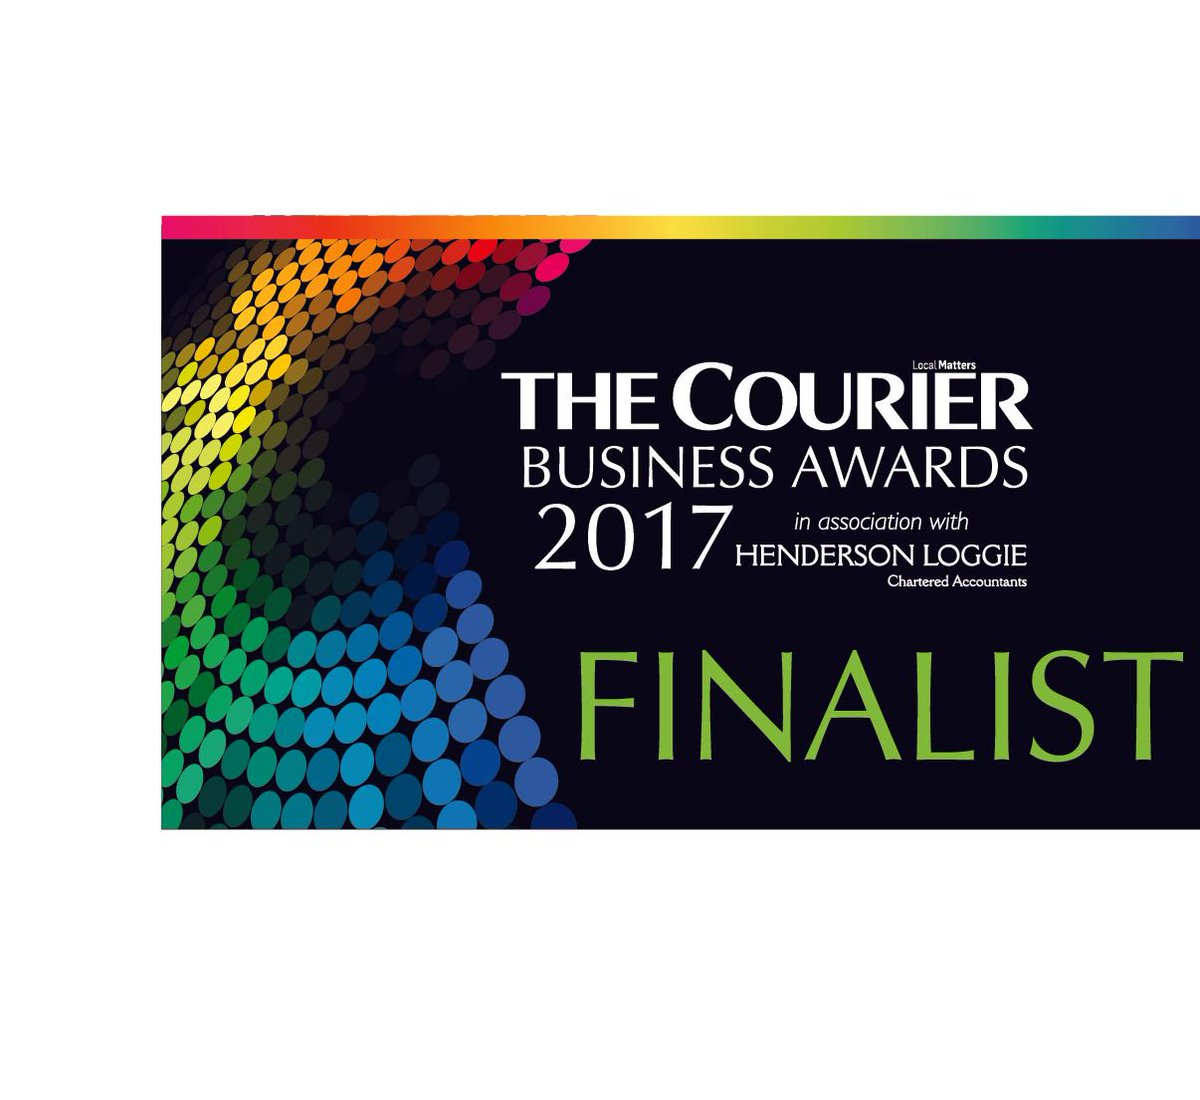 Delighted  that @Grow_Biz  is a Finalist in the Social Impact Business of the Year Category of @CourierBizAward 2017! #CourierBizAwards <br>http://pic.twitter.com/Ec5eFuR0C0